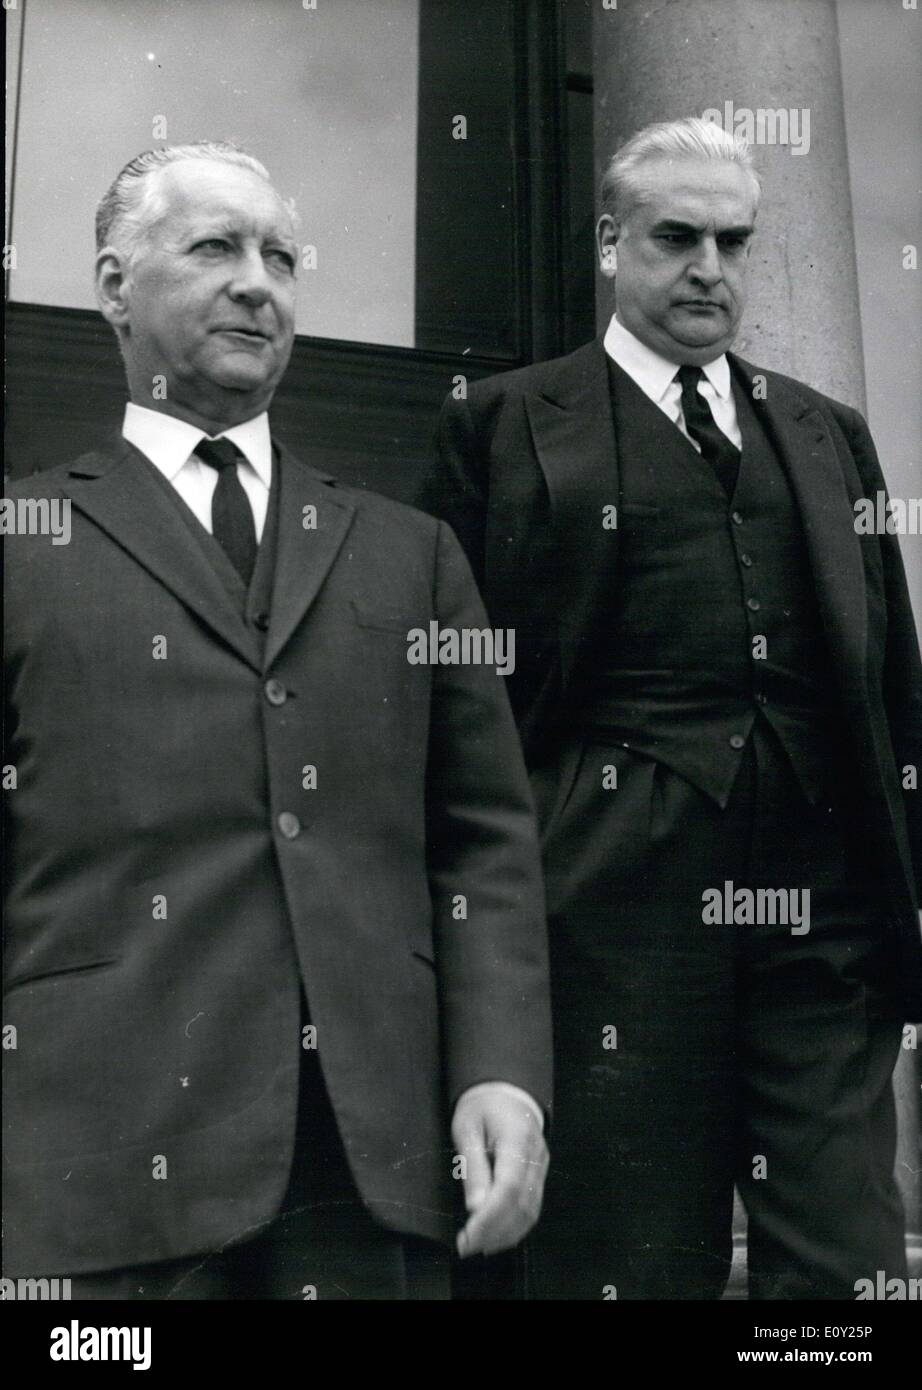 May 19, 1968 - A restricted meeting was held Sunday morning at the Elysee Palace in order to closely examine the current situation. Participants in this meeting included Minister of the Armies Messmer (left) and Minister of the Interior Fouche. Here they are shown leaving the Elysee Palace. - Stock Image